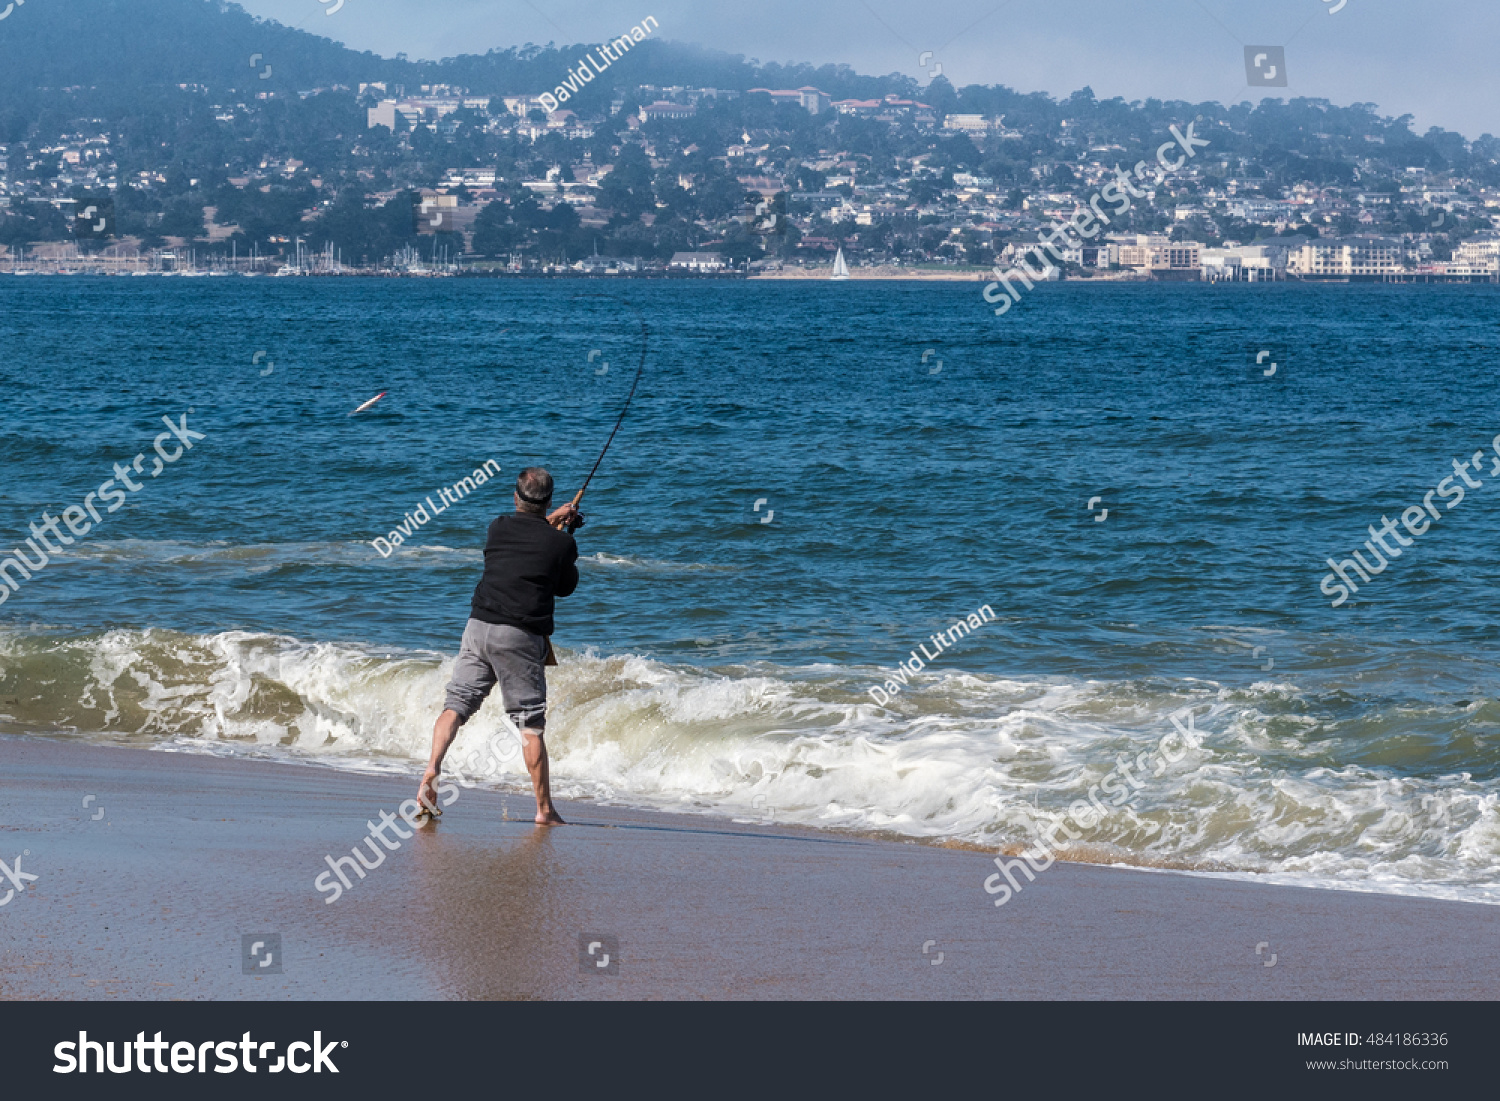 Seaside, California - September 15, 2016: A man enjoys an active lifestyle fishing in the surf along the sandy shore of the beach in Seaside, along the coast of the Monterey Bay in central California.